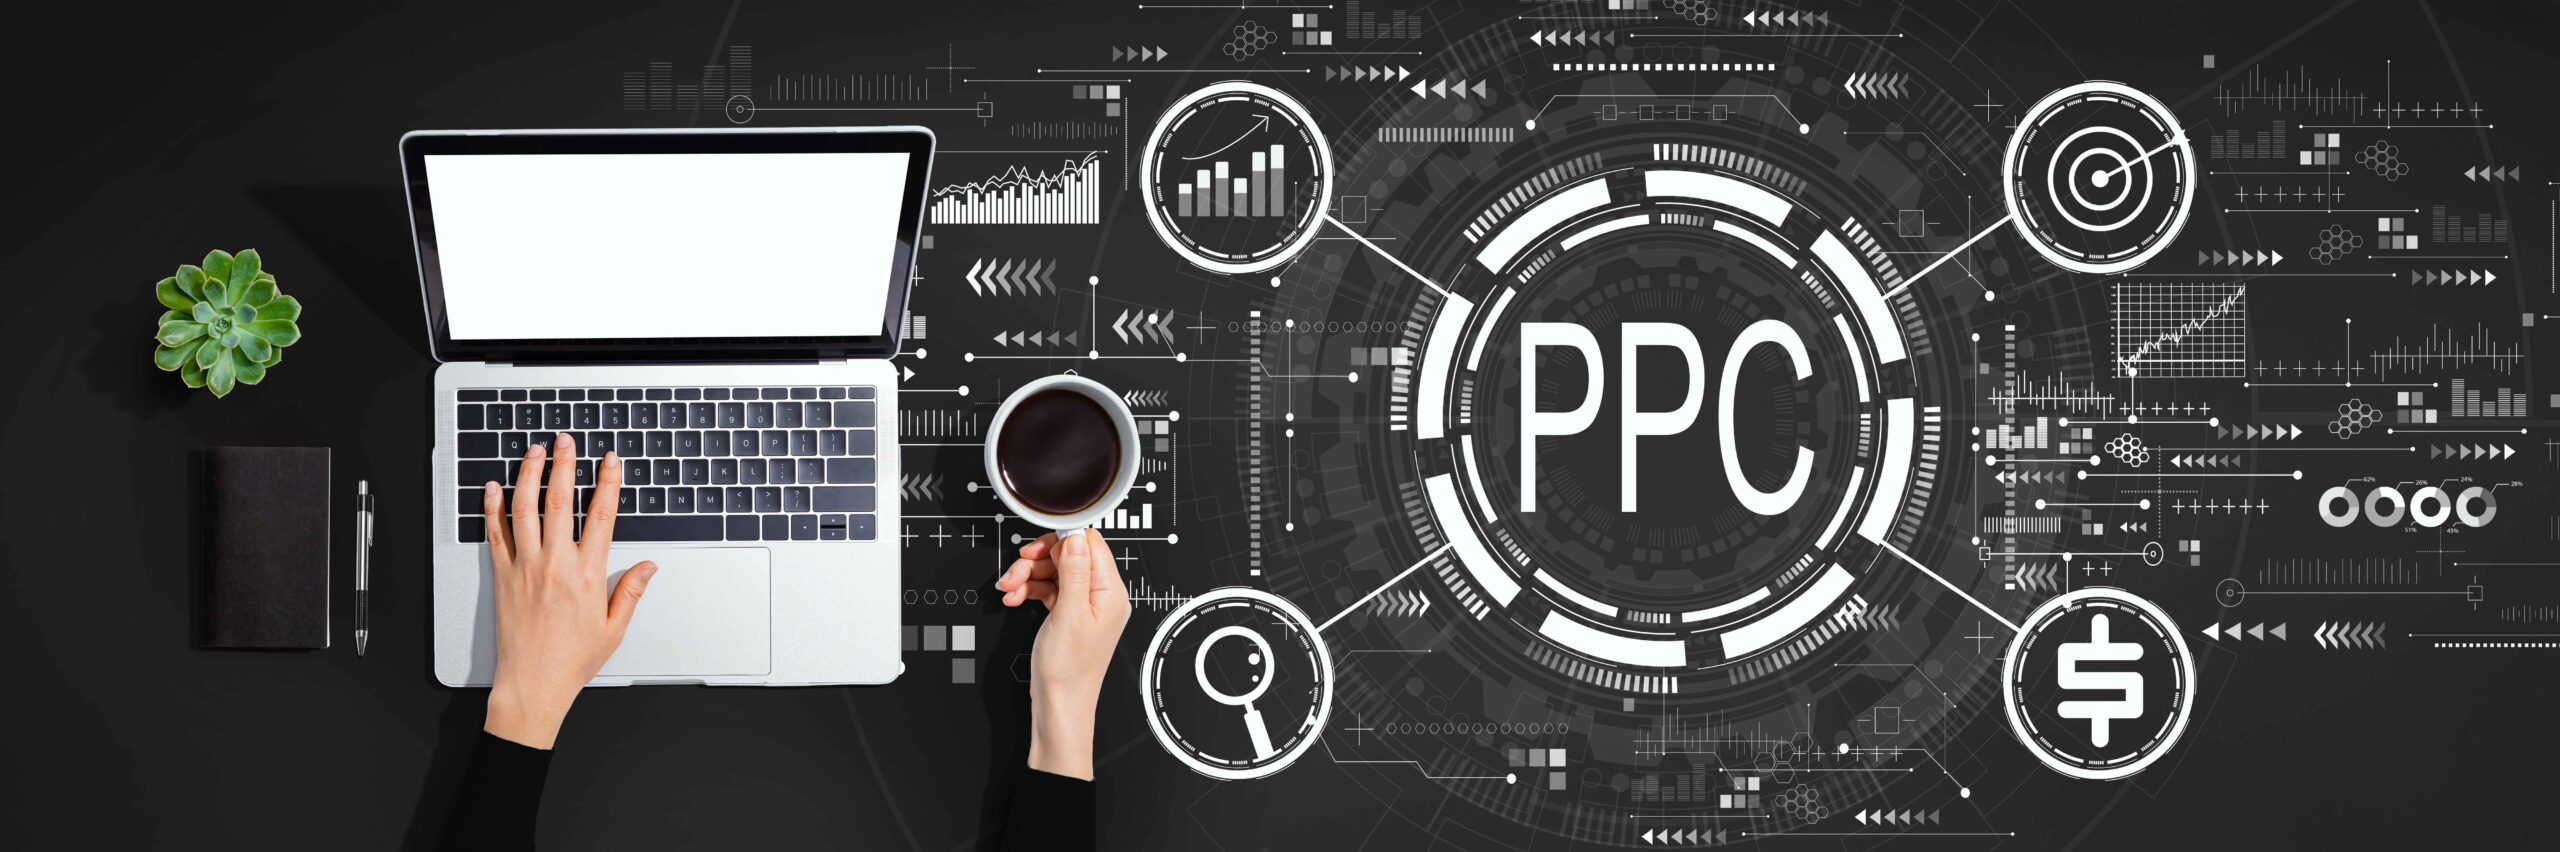 Understanding PPC Advertising and How to Use It for Your Business